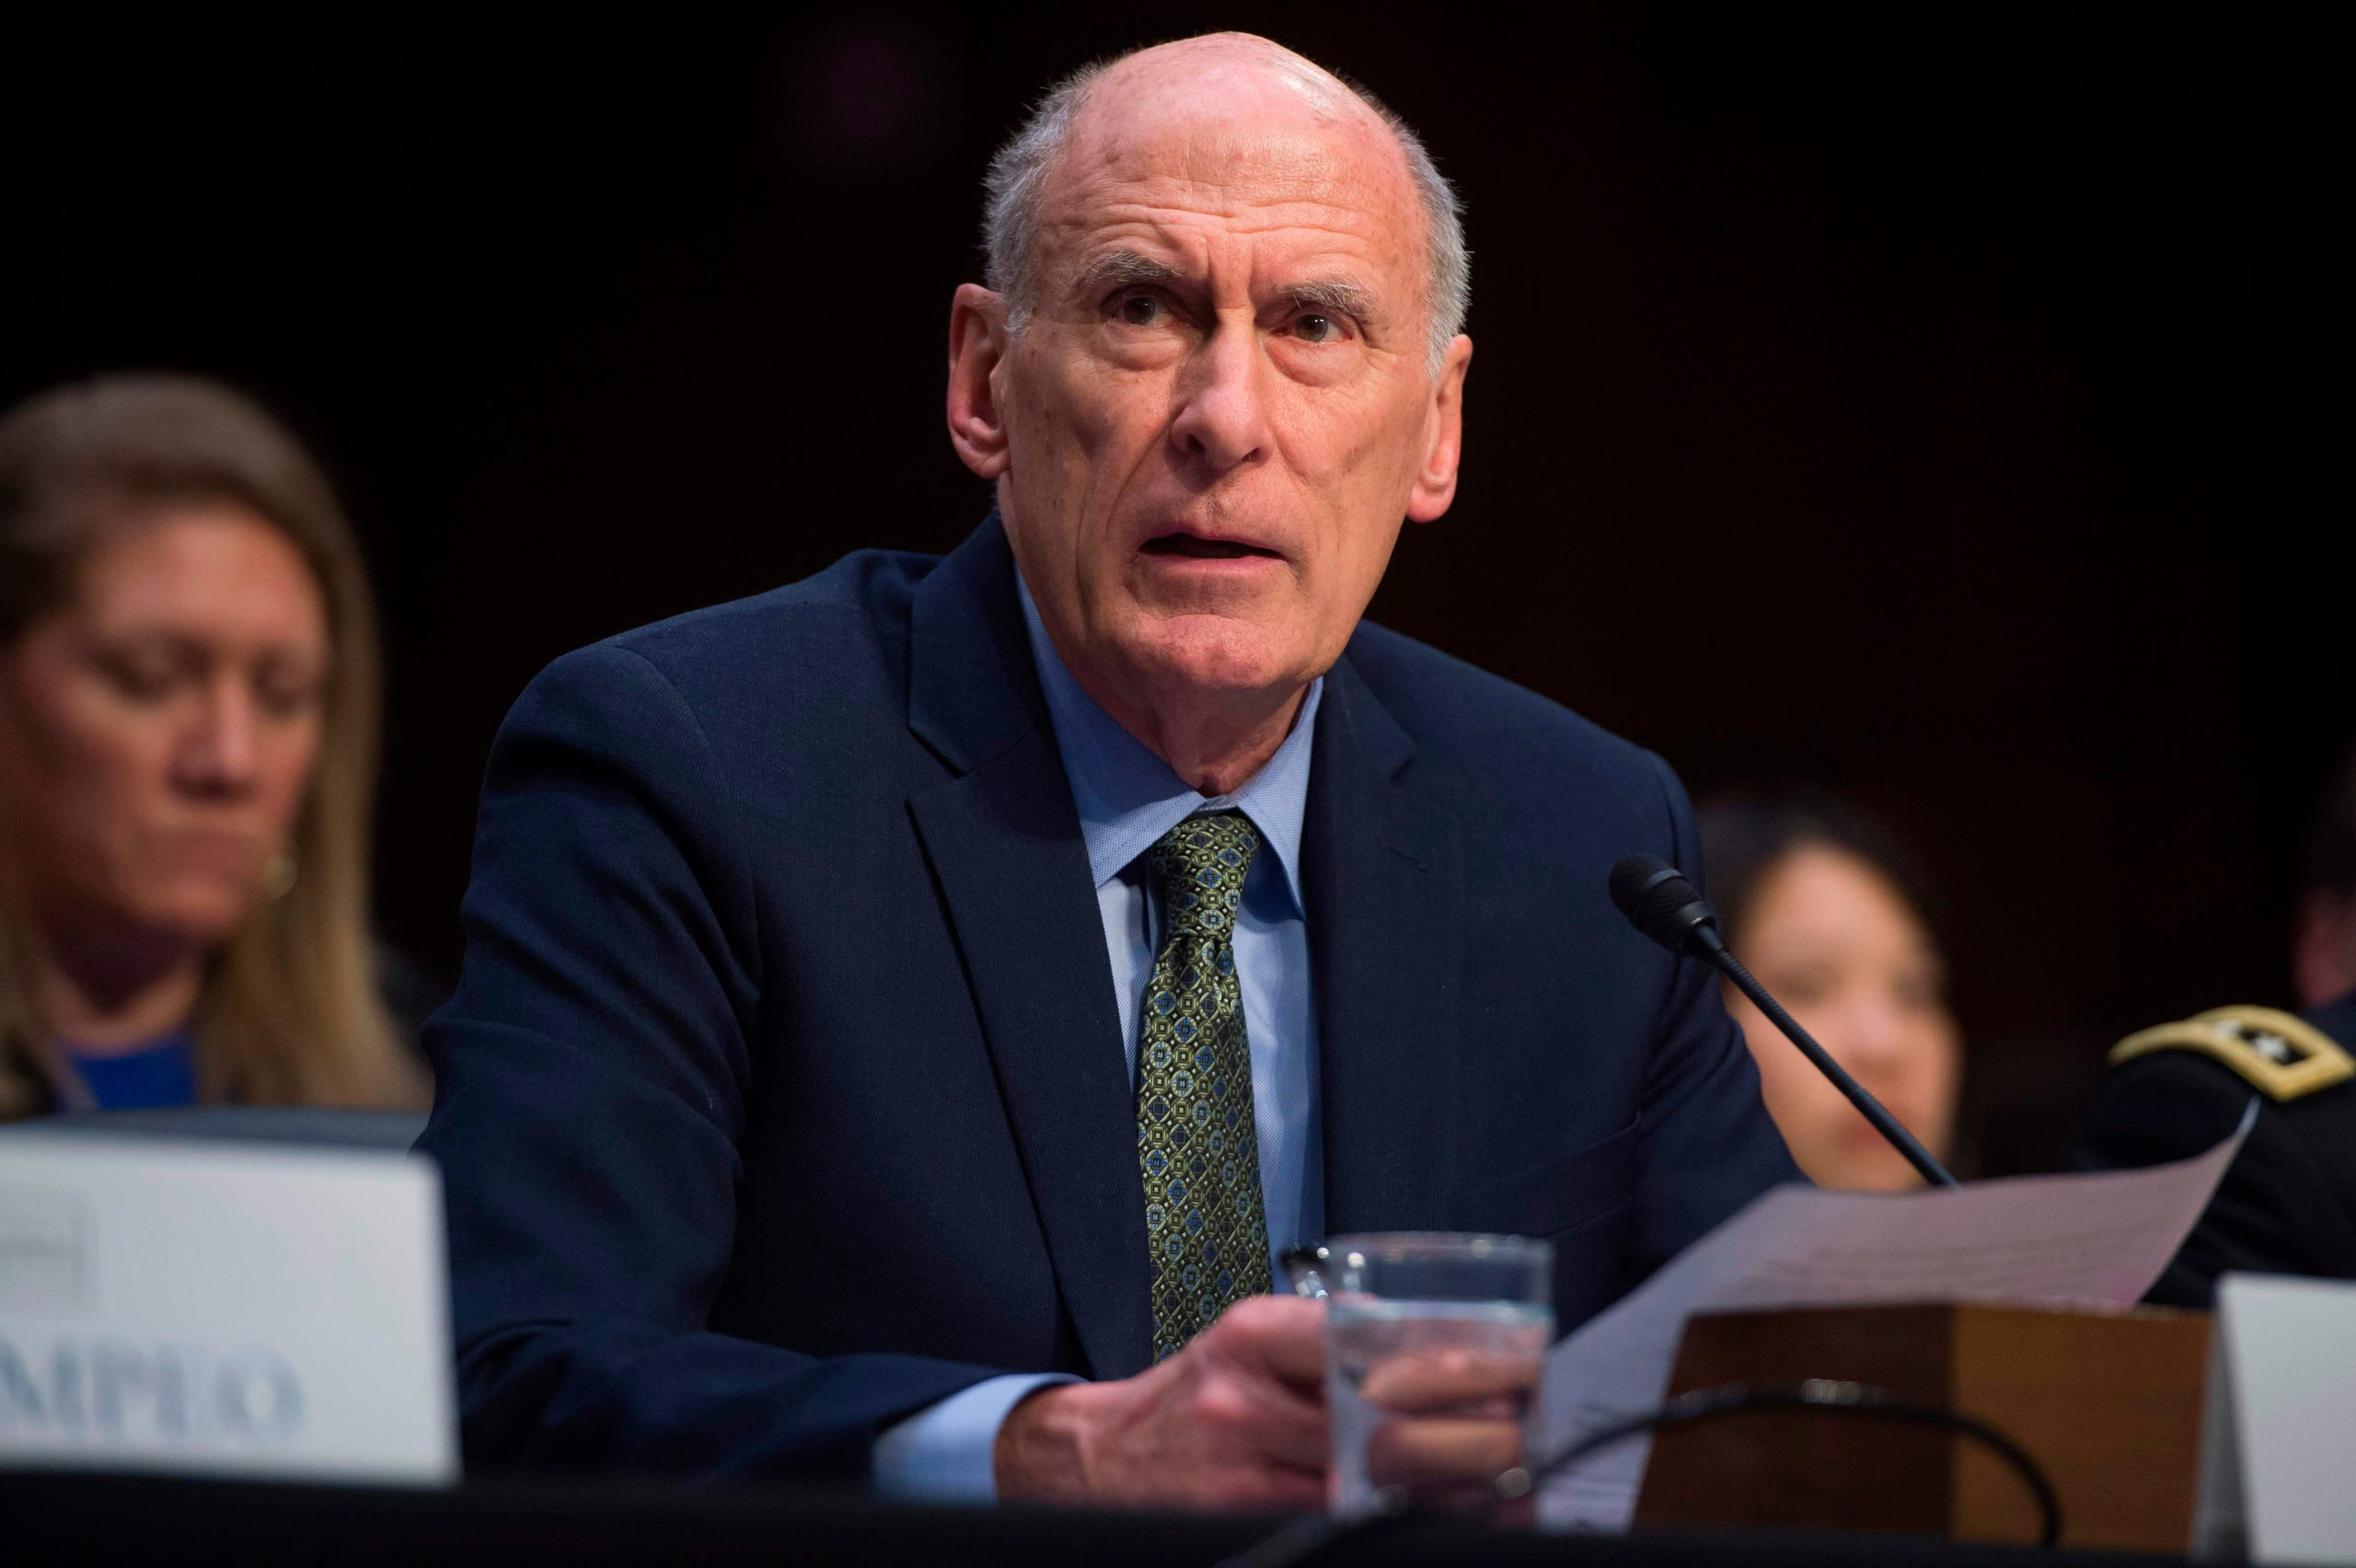 Director ofNational Intelligence Dan Coatsresigned on July 28, 2019 after a tenure that featured clashes with President Donald Trump over Russia, North Korea, and other national security issues.